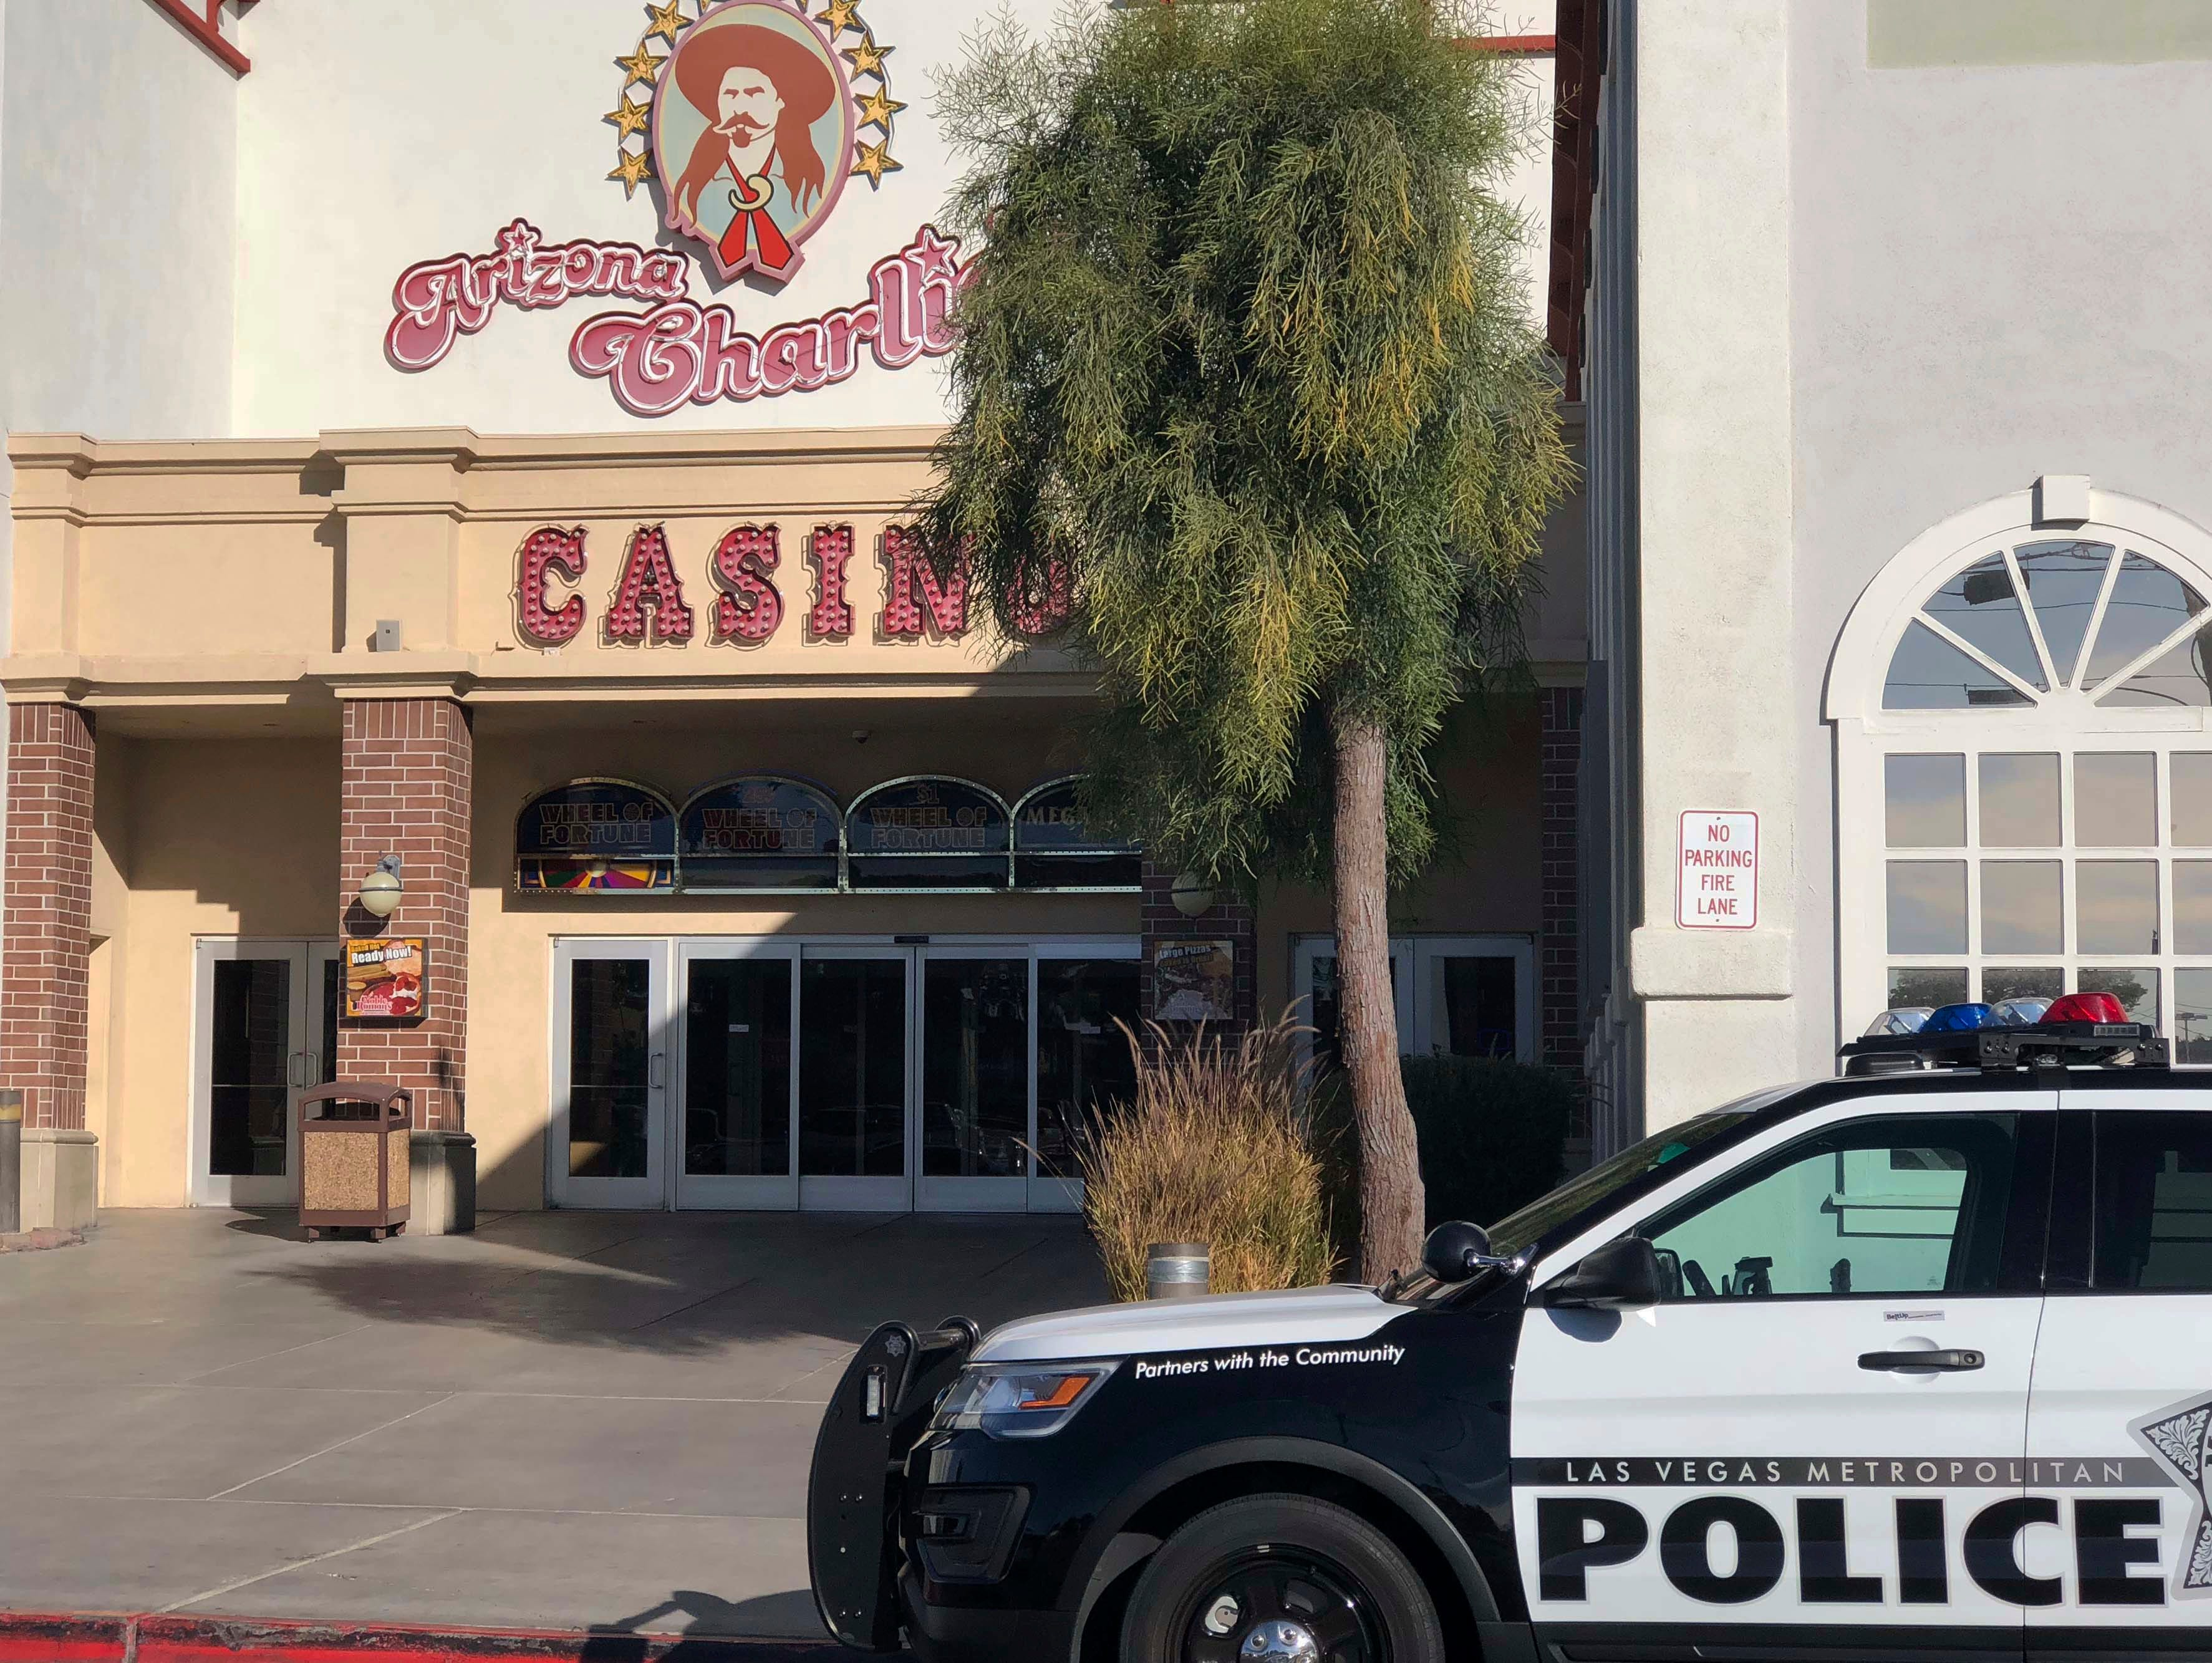 Metropolitan Police Department officers were called the morning of Dec. 30, 2017, to investigate reports of a shooting at Arizona Charlie's casino-hotel in Las Vegas.